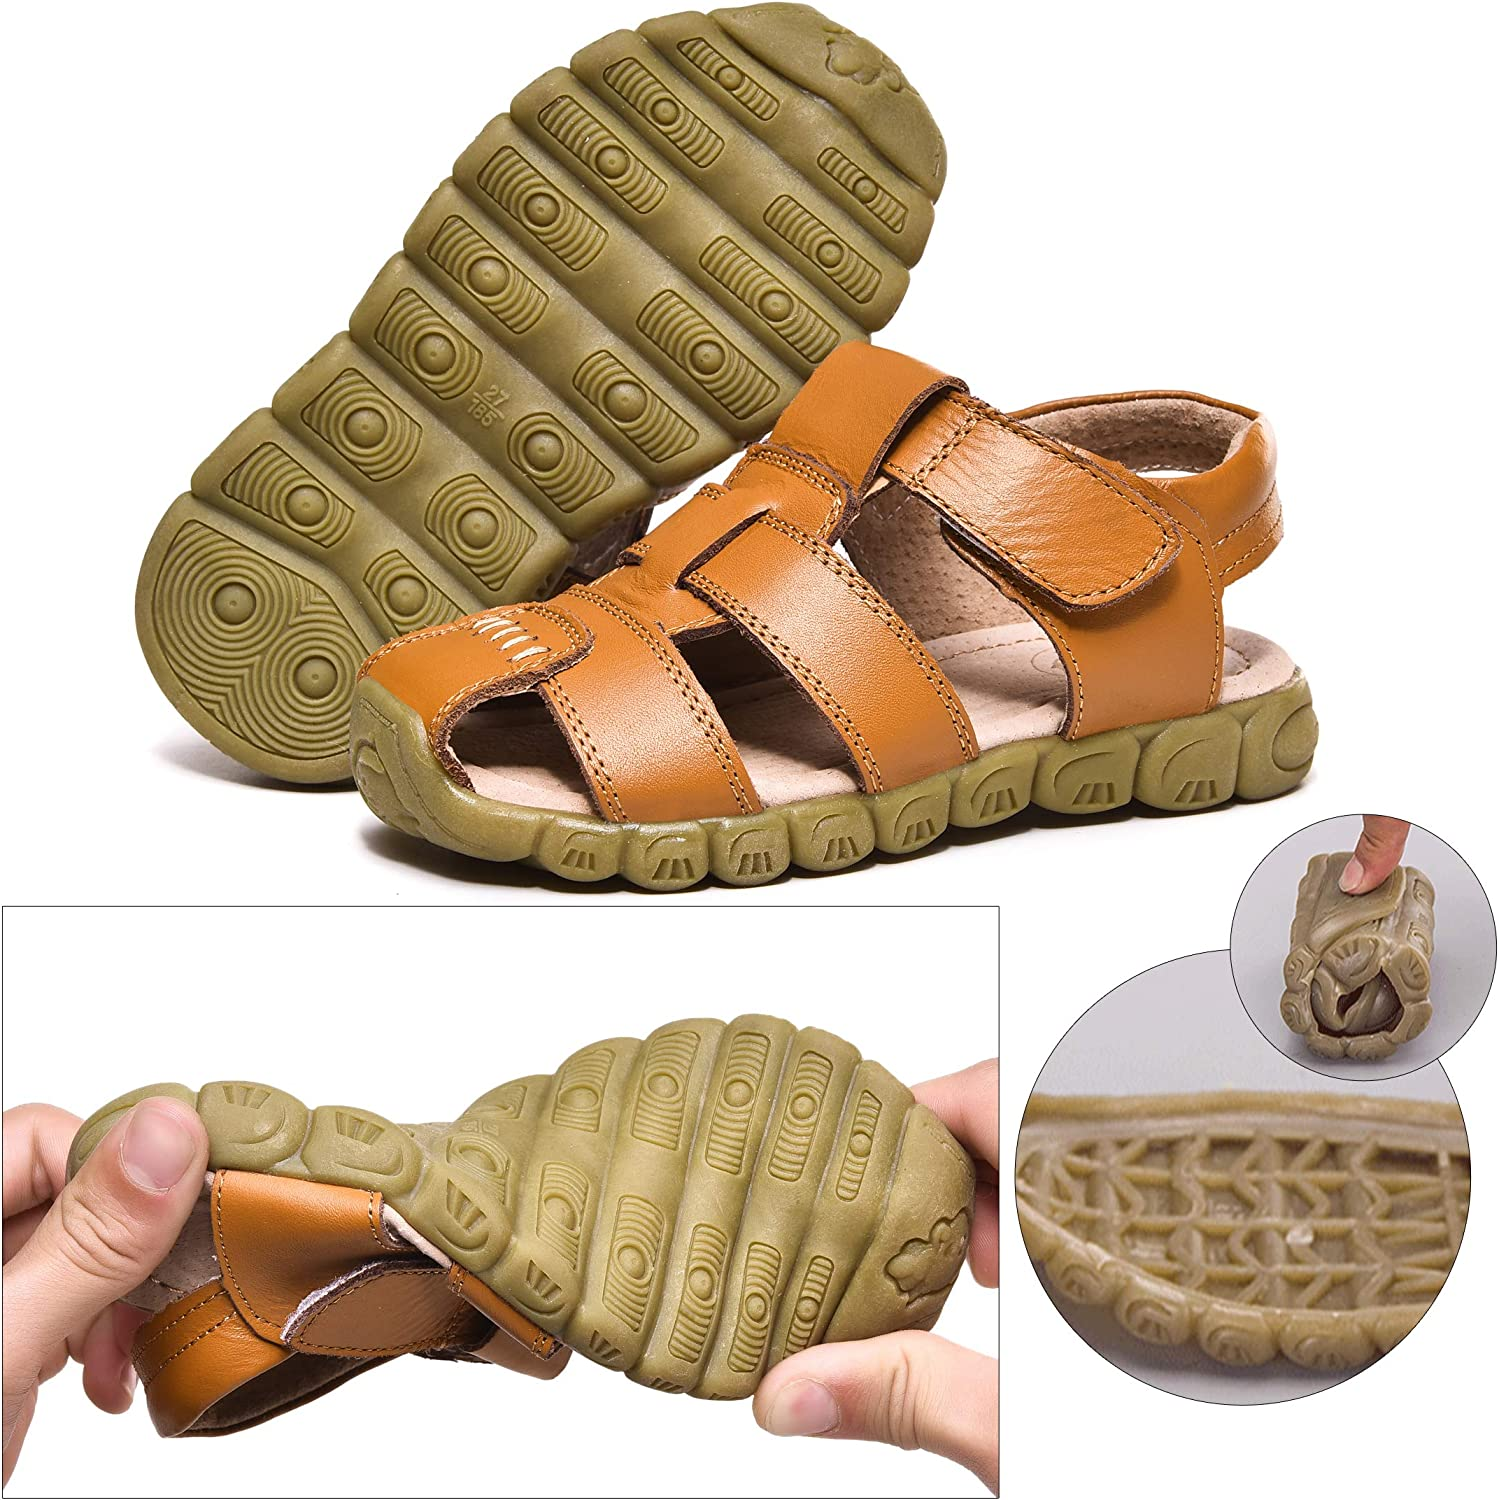 Boys Girls Leather Outdoor Sport Sandal Kids Beach Shoes Closed-Toe Shoes  Fisherman Sandals Casual Trekking Walking Hiking Toddler/Little Kid/Big Kid  Boys' Shoes Sandals